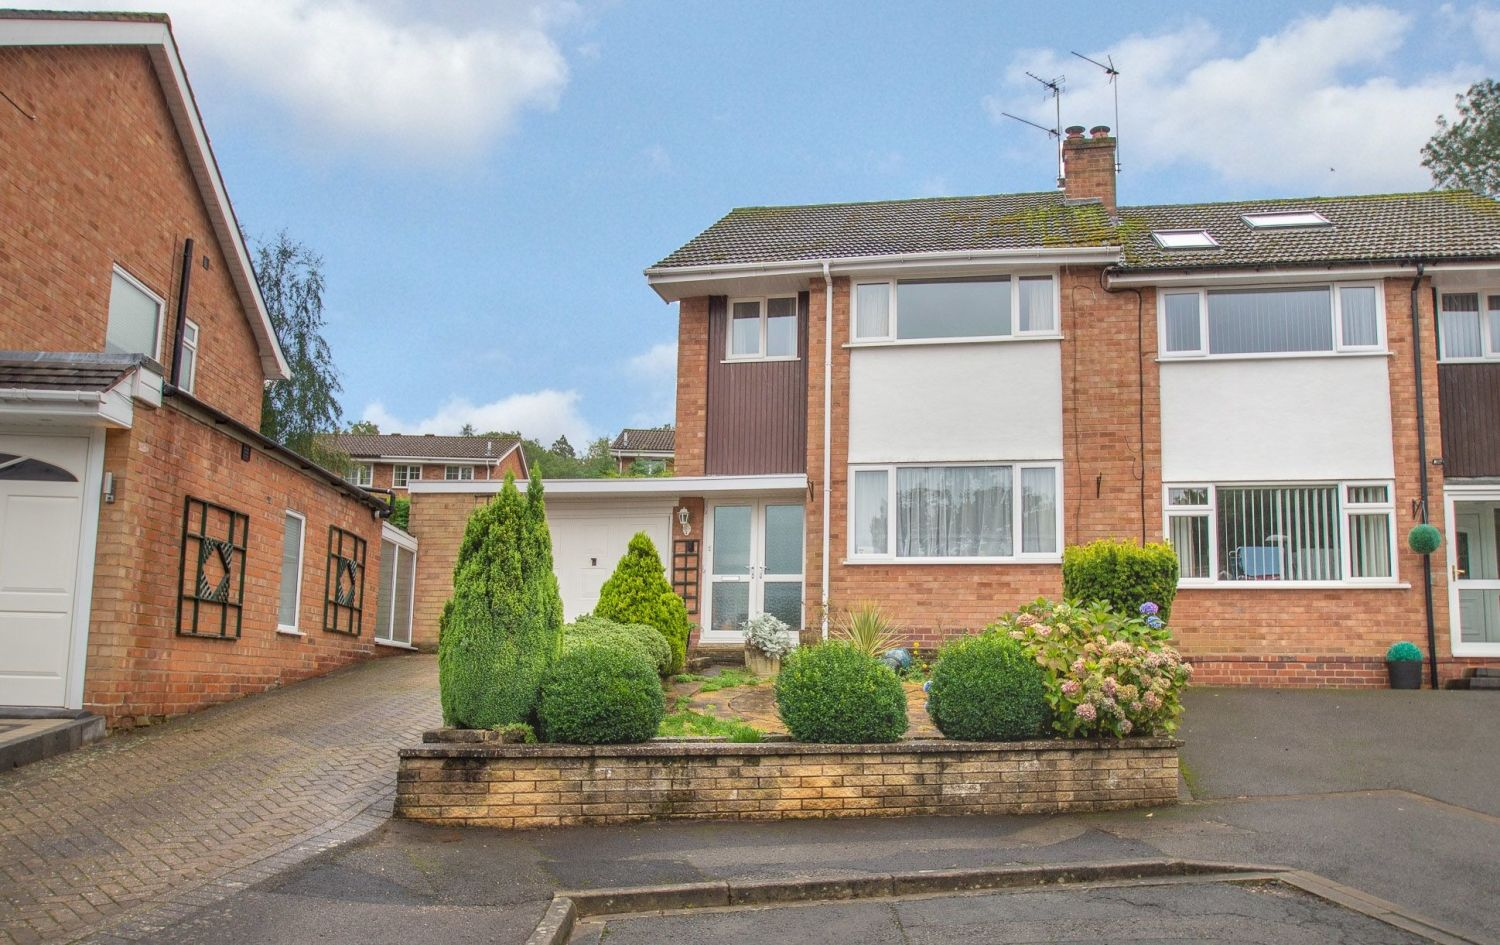 3 bed semi-detached for sale in Vicarage Crescent, Redditch  - Property Image 1